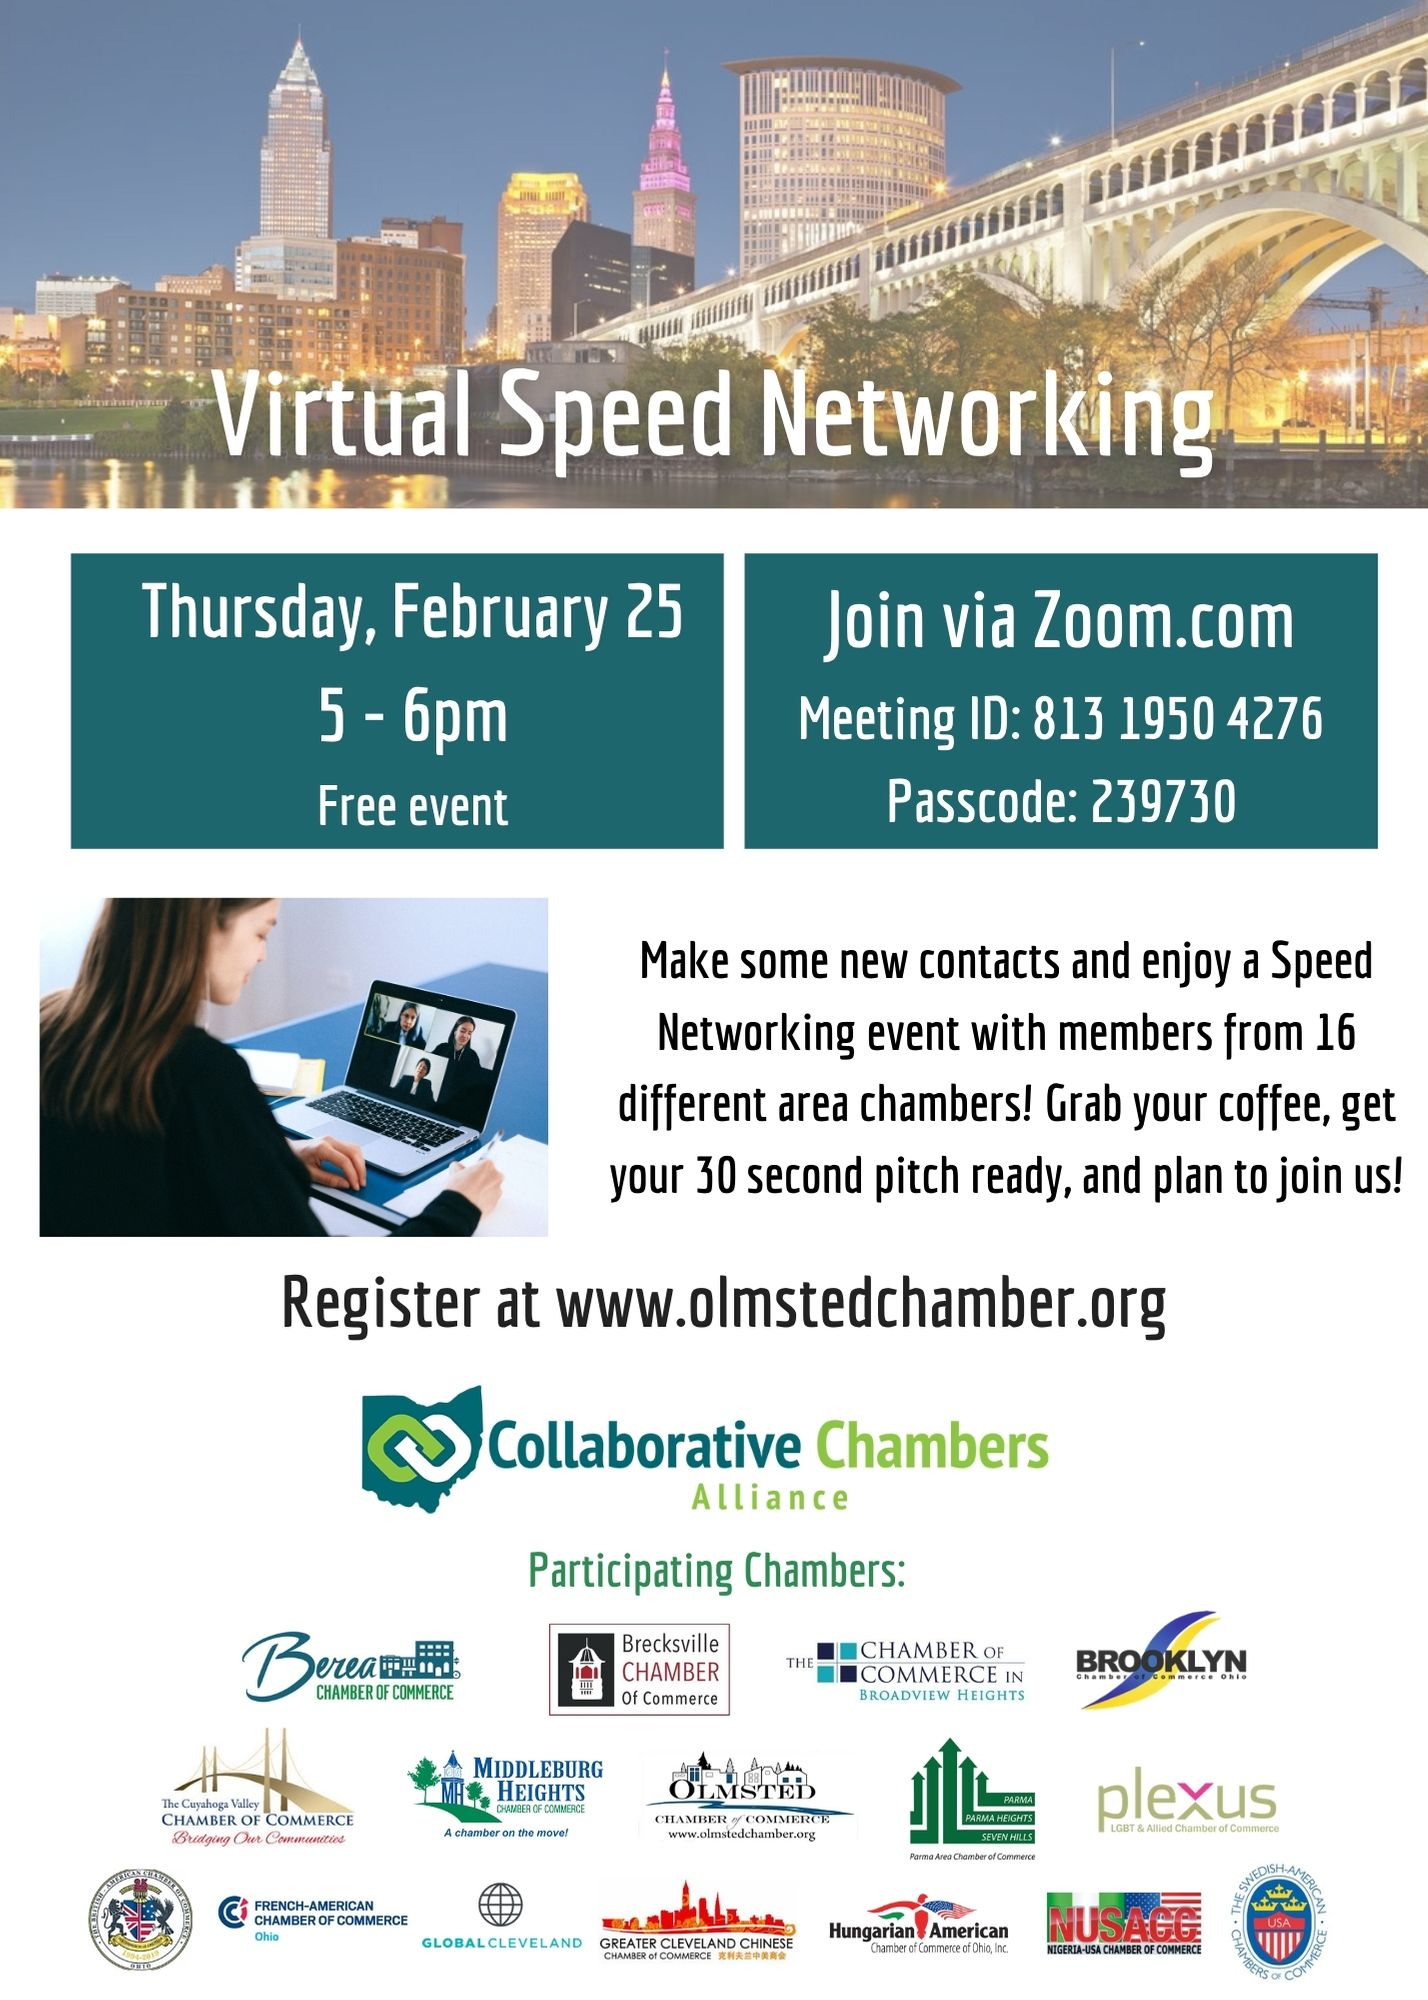 CCA Virtual Networking 2.25.21